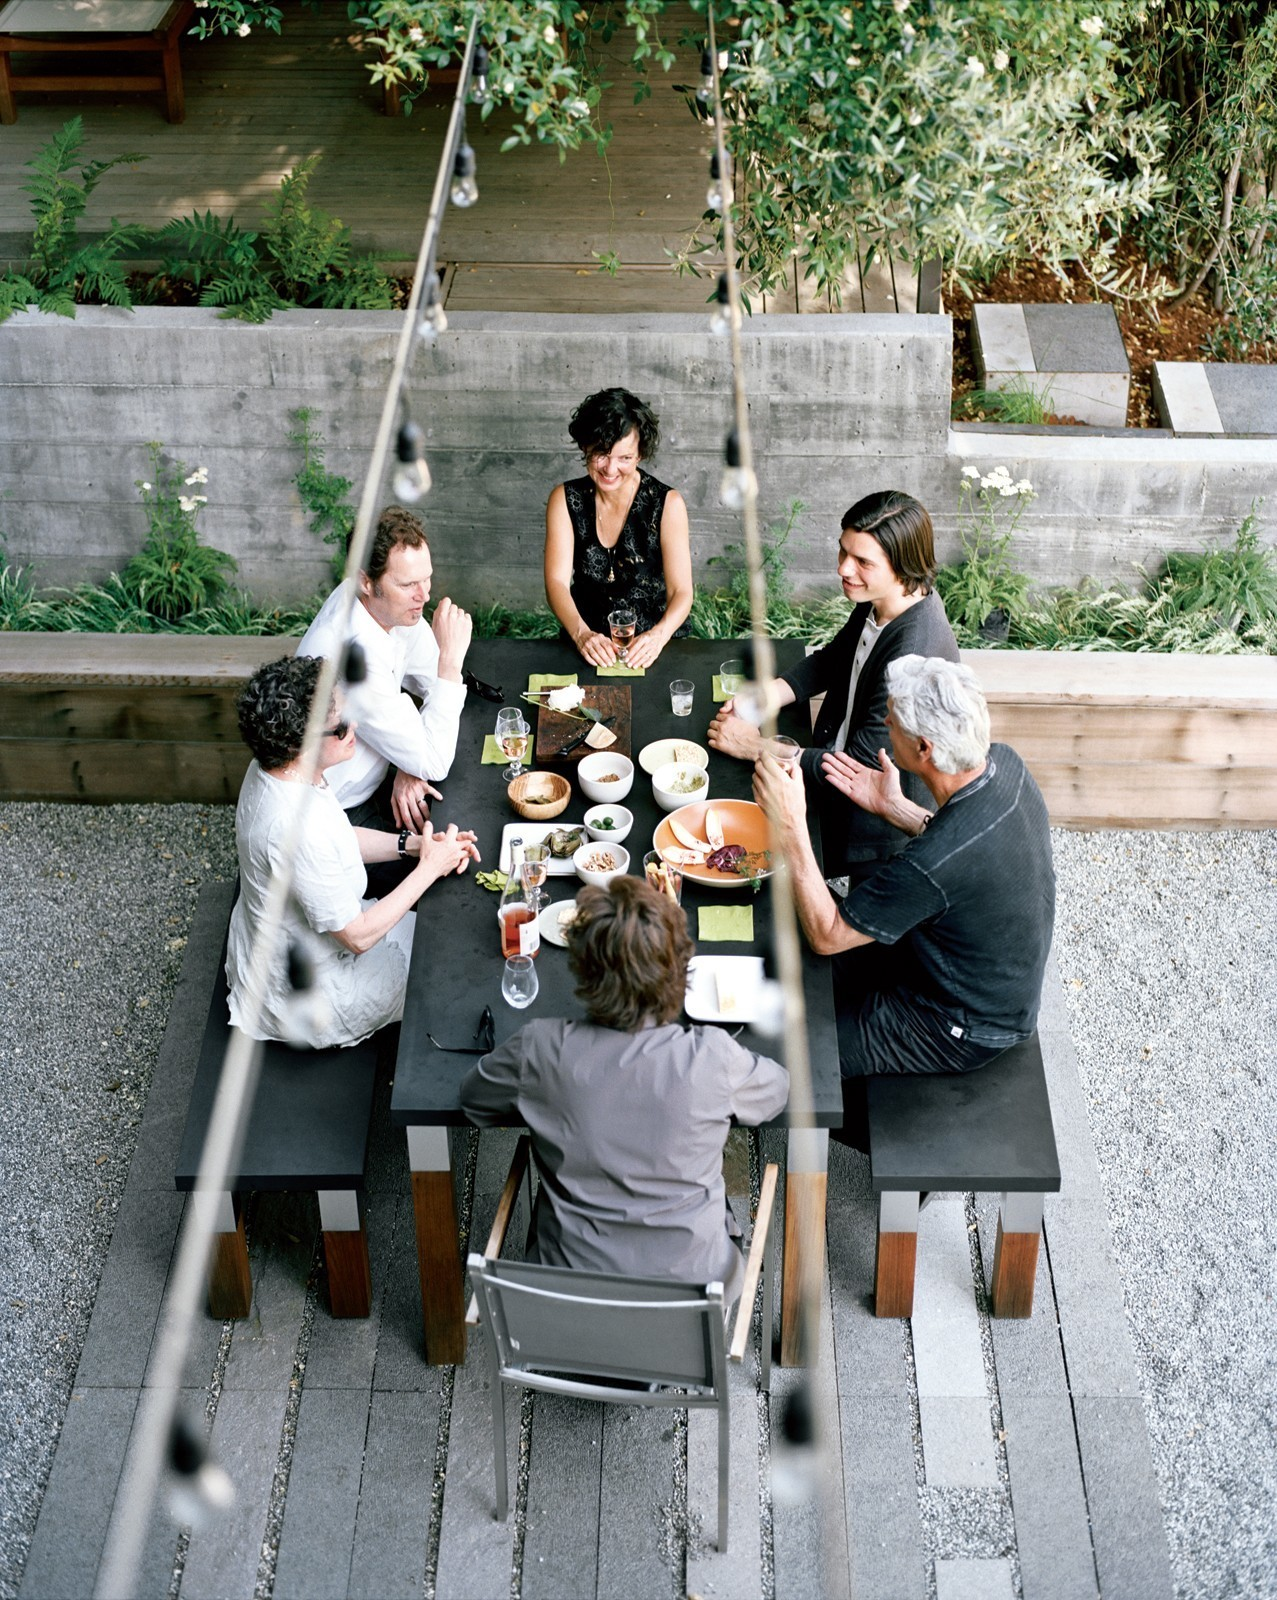 Articles about 7 outdoor entertaining areas done right on Dwell.com - Dwell